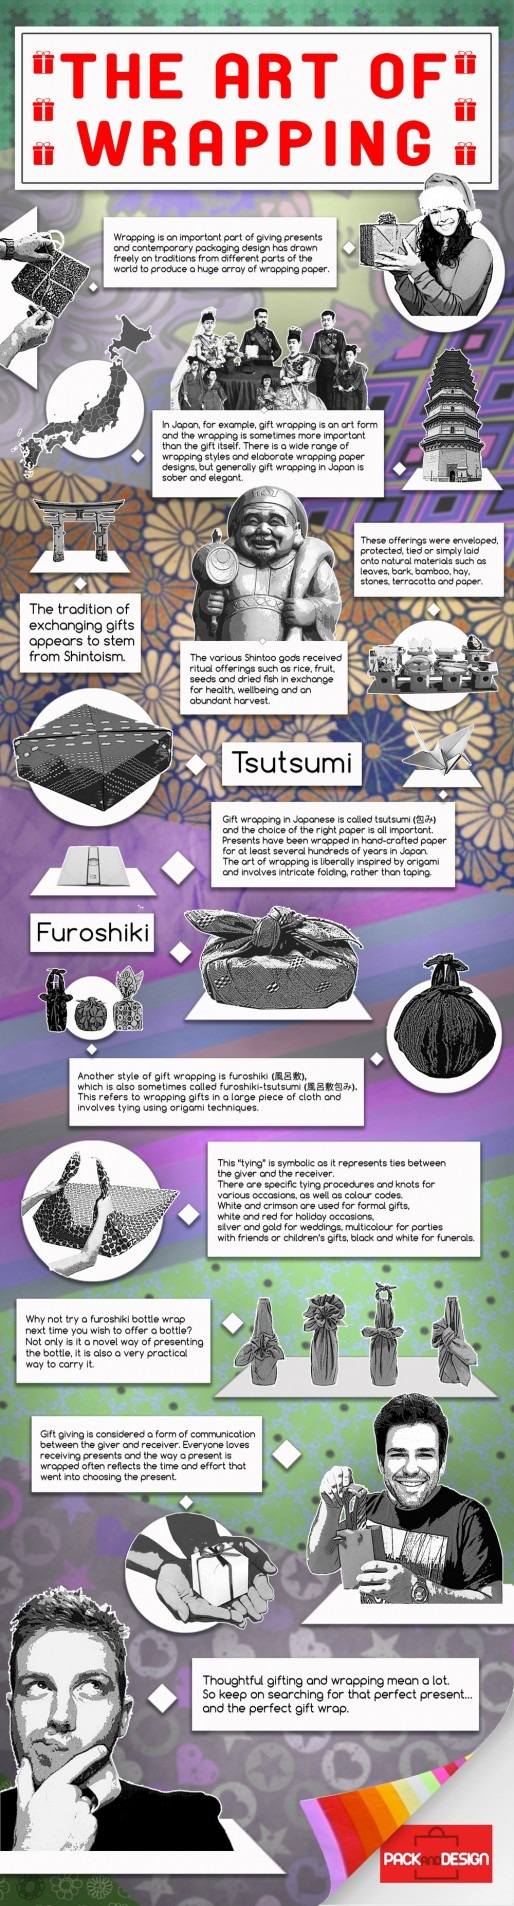 Infographic The Art of Wrapping for Pack and Design